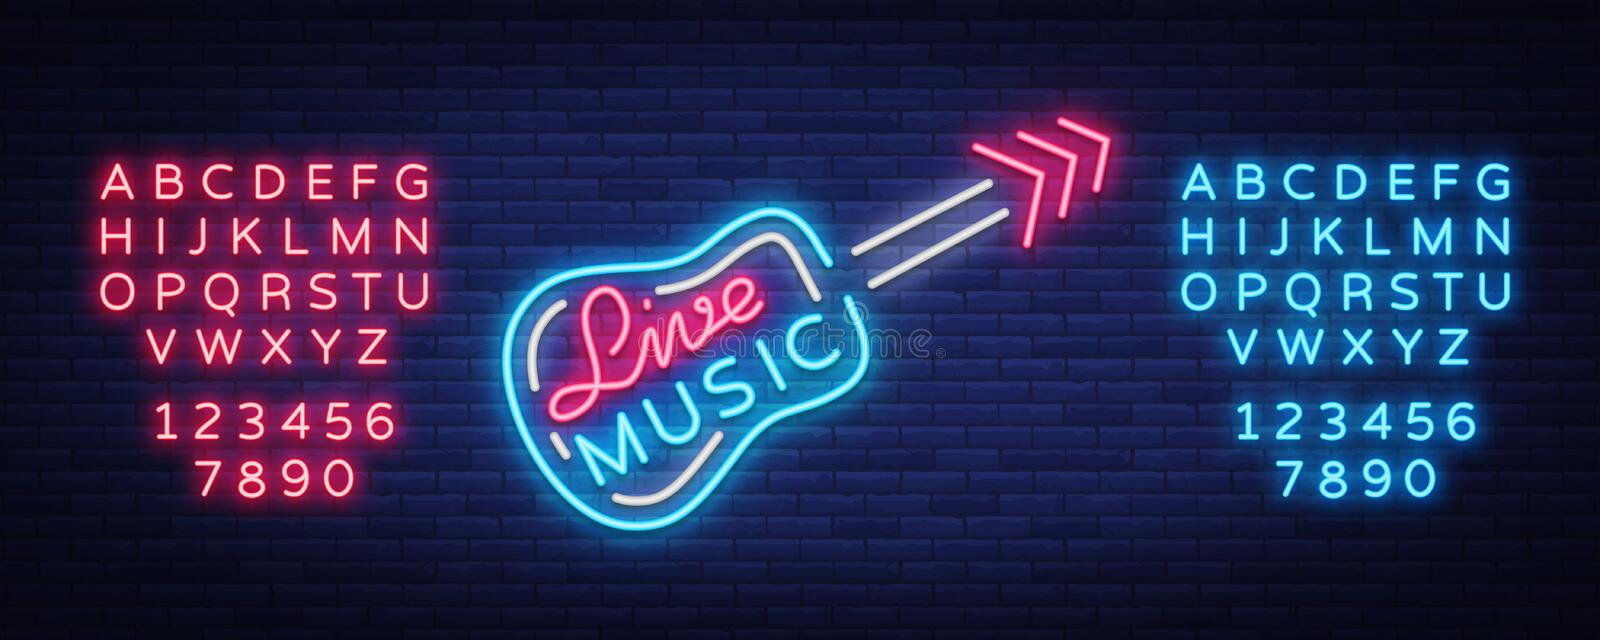 Live music neon sign vector, poster, emblem for live music festival, music bars, karaoke, night clubs. Template for vector illustration